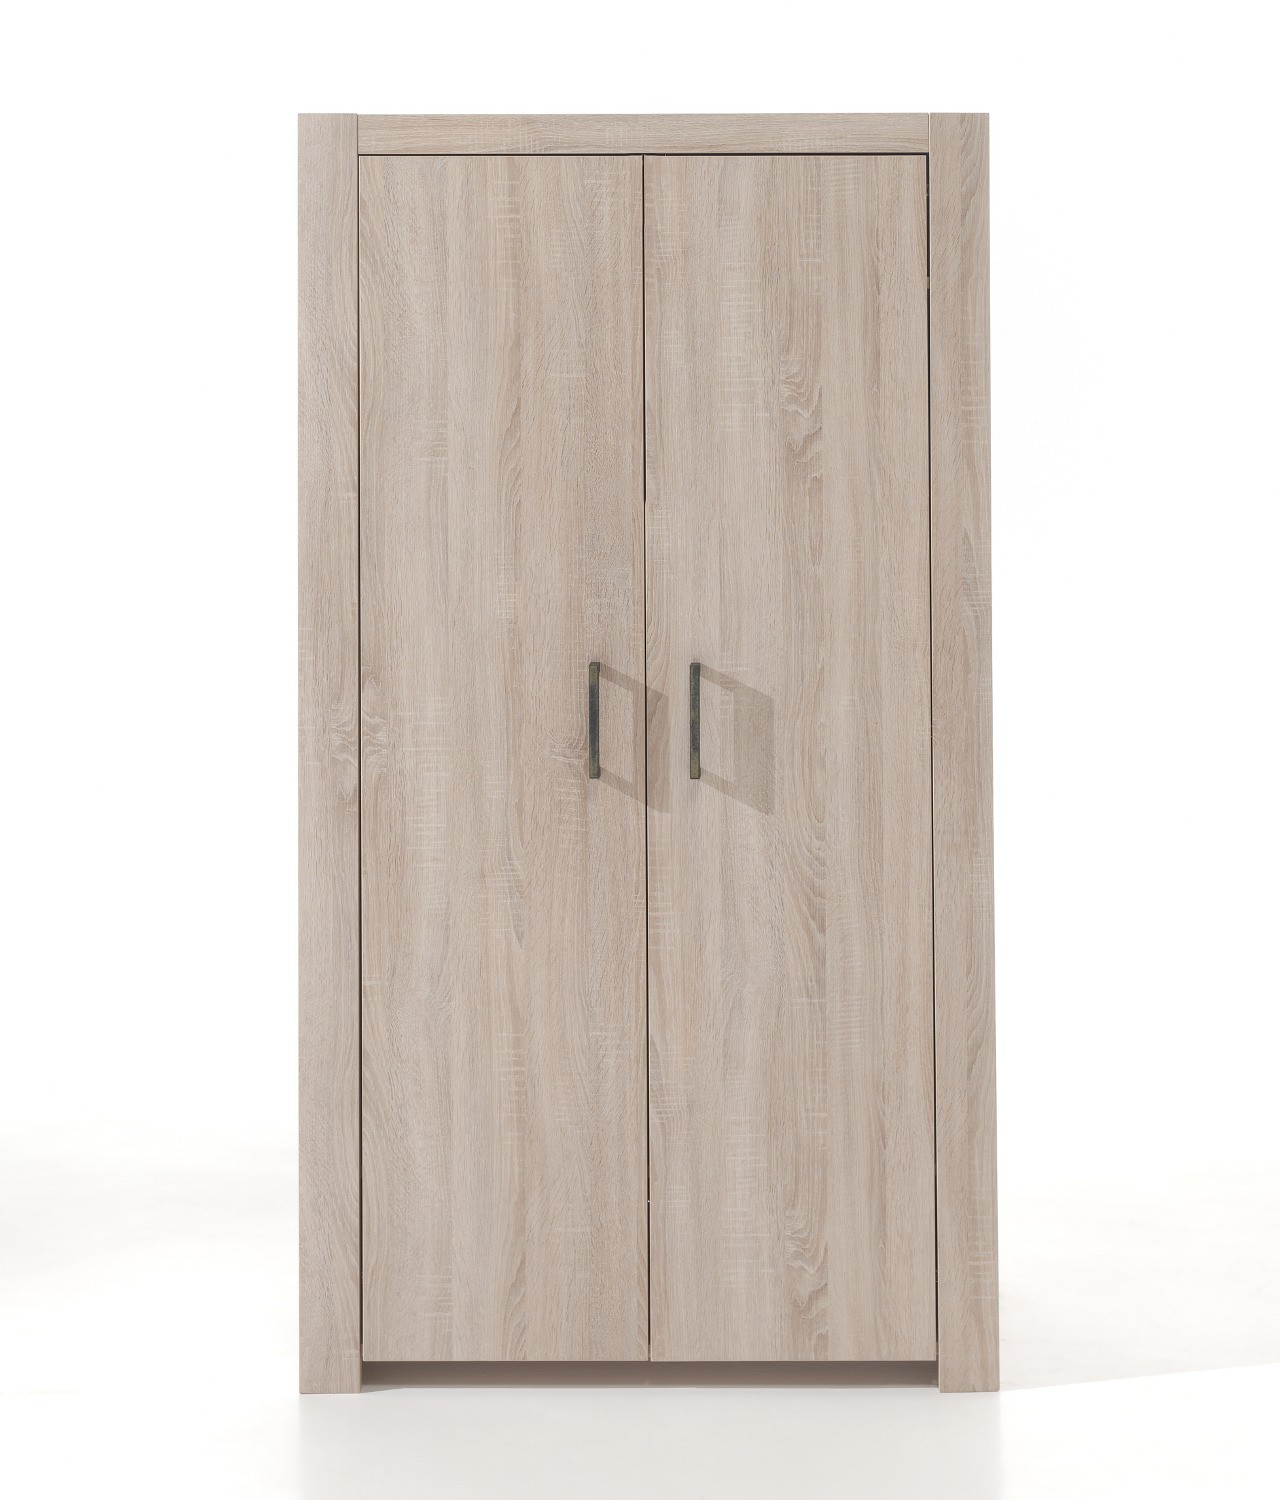 kleiderschrank aline 2 t rig eiche sonoma sonoma. Black Bedroom Furniture Sets. Home Design Ideas